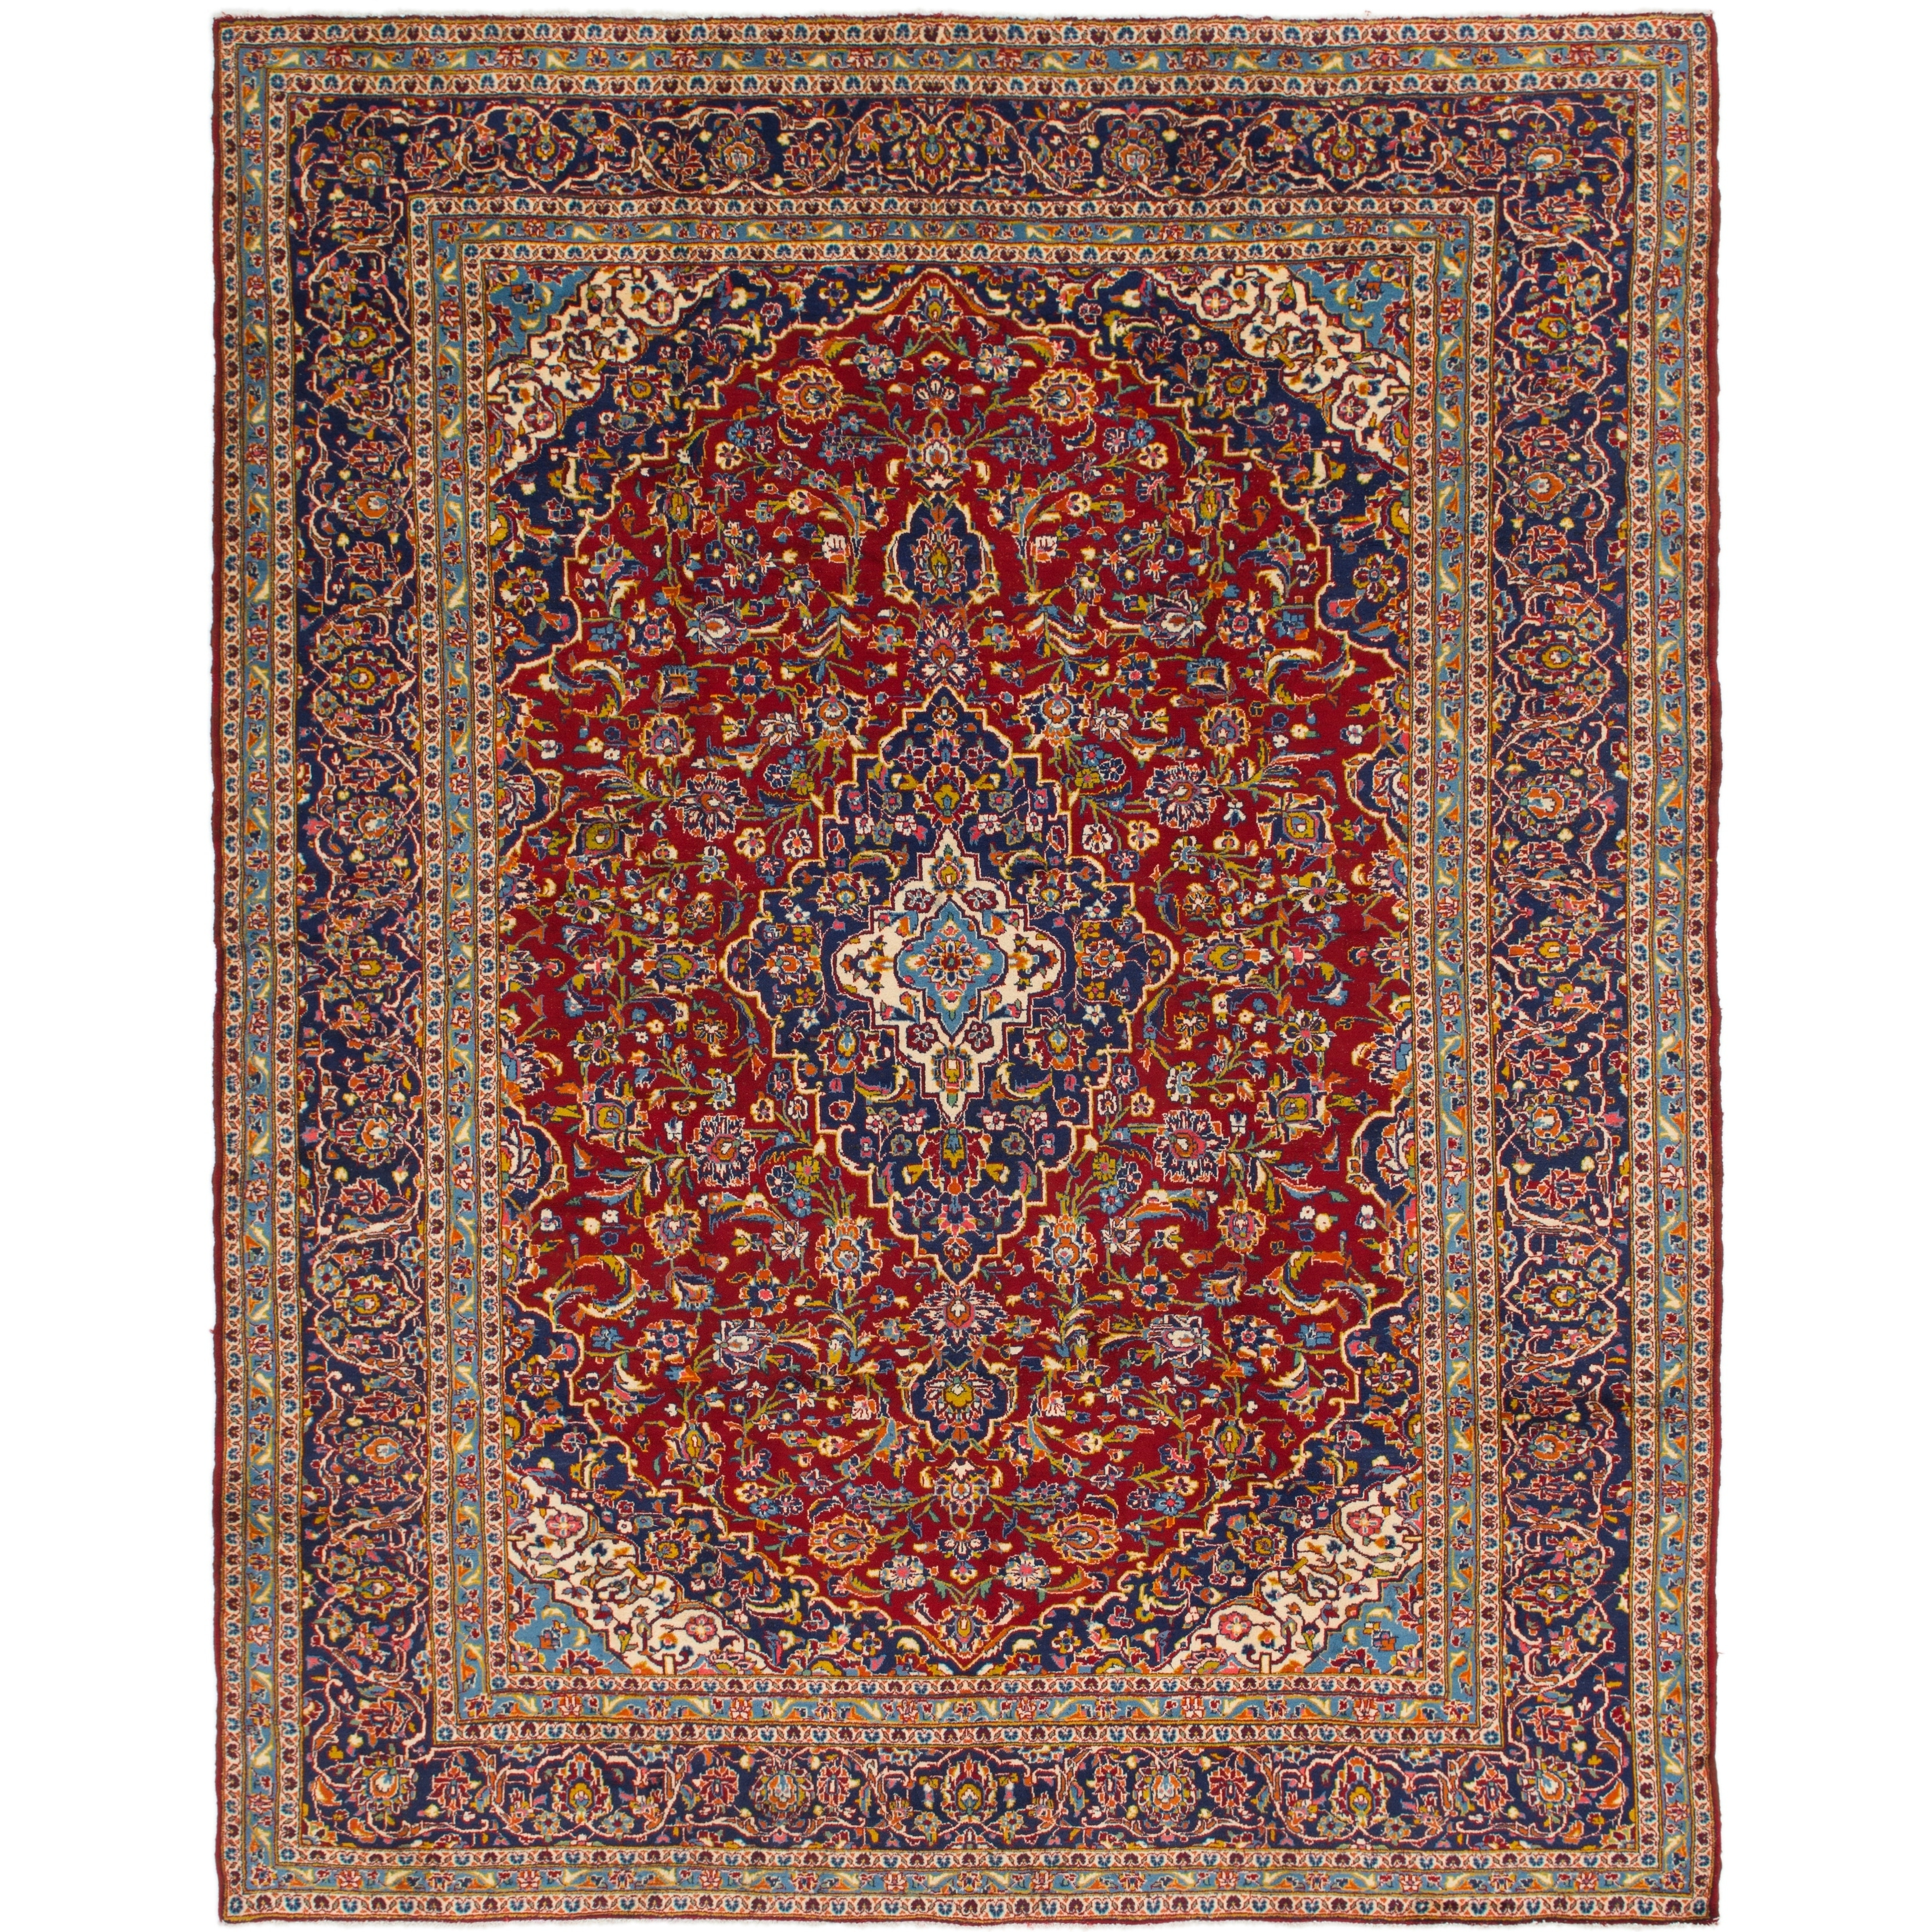 Hand Knotted Kashan Semi Antique Wool Area Rug - 9 9 x 12 7 (Red - 9 9 x 12 7)